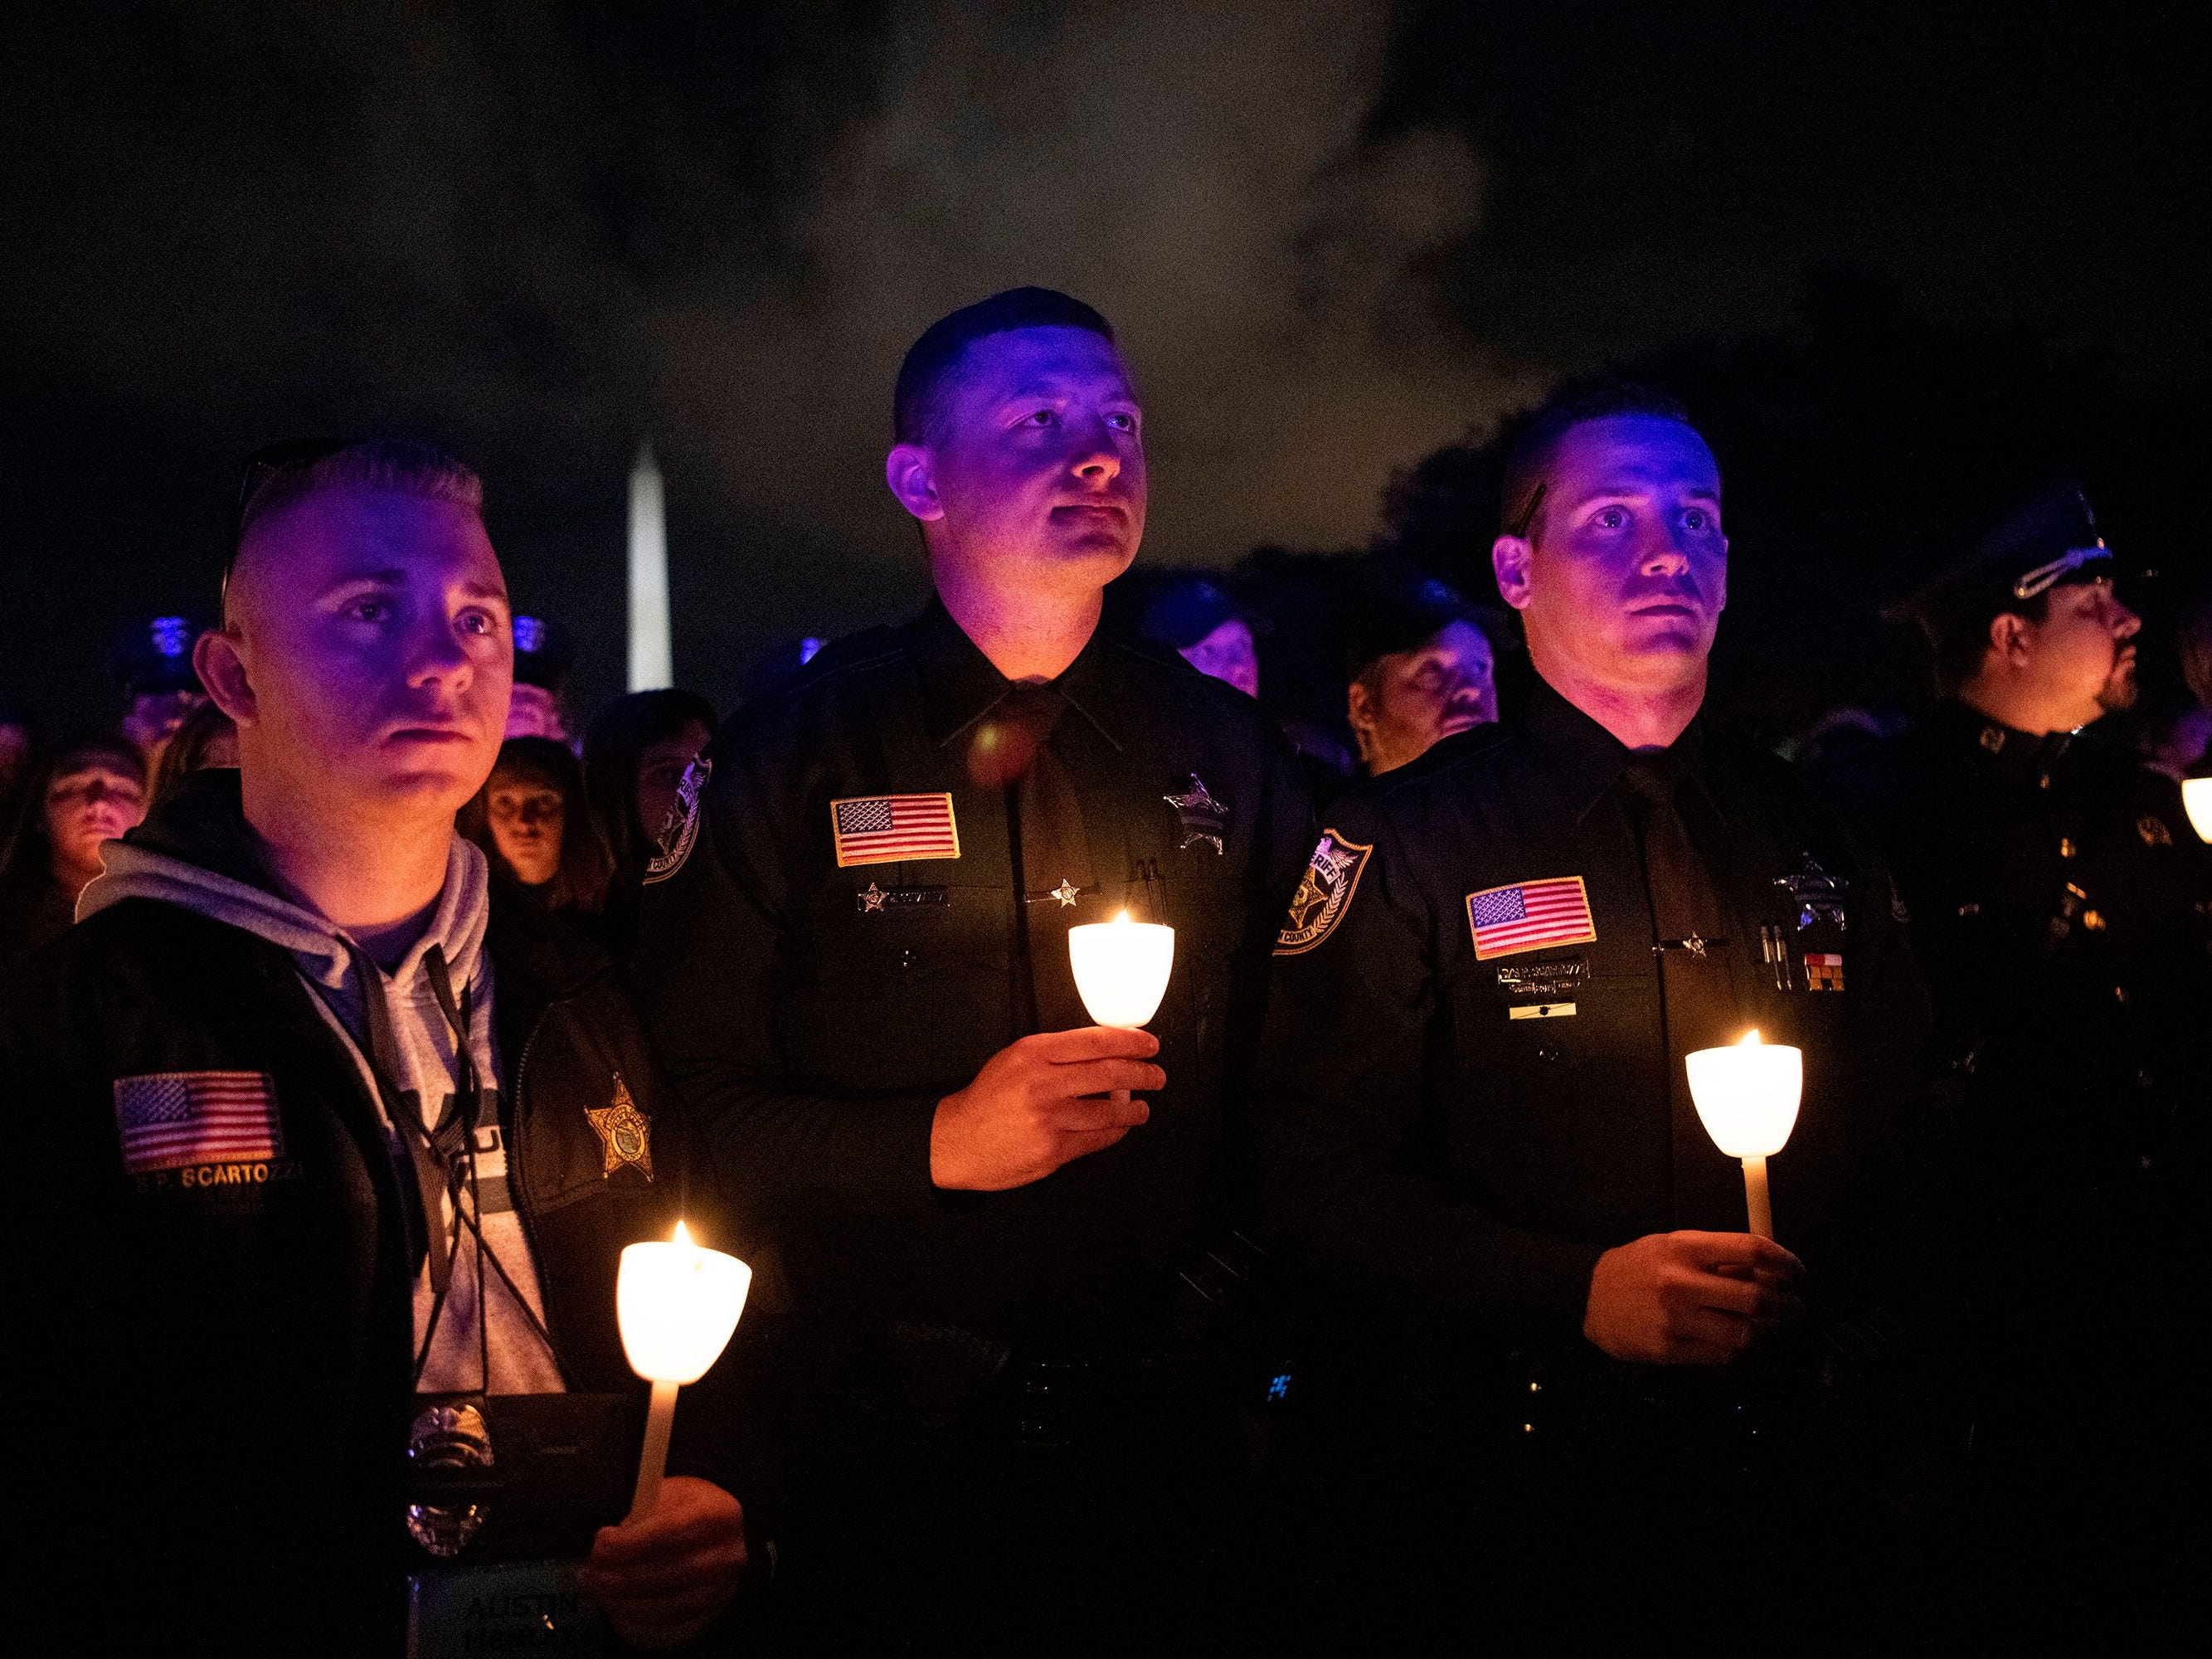 Austin Henley (from left), Joshua Gonzalez and Patrick Scartozzi, all police officers in West Palm Beach, hold candles on the National Mall in Washington, D.C., Monday, May 13, 2019, during a candlelight vigil to honor slain law enforcement officers as part of Police Week in the nation's capital.